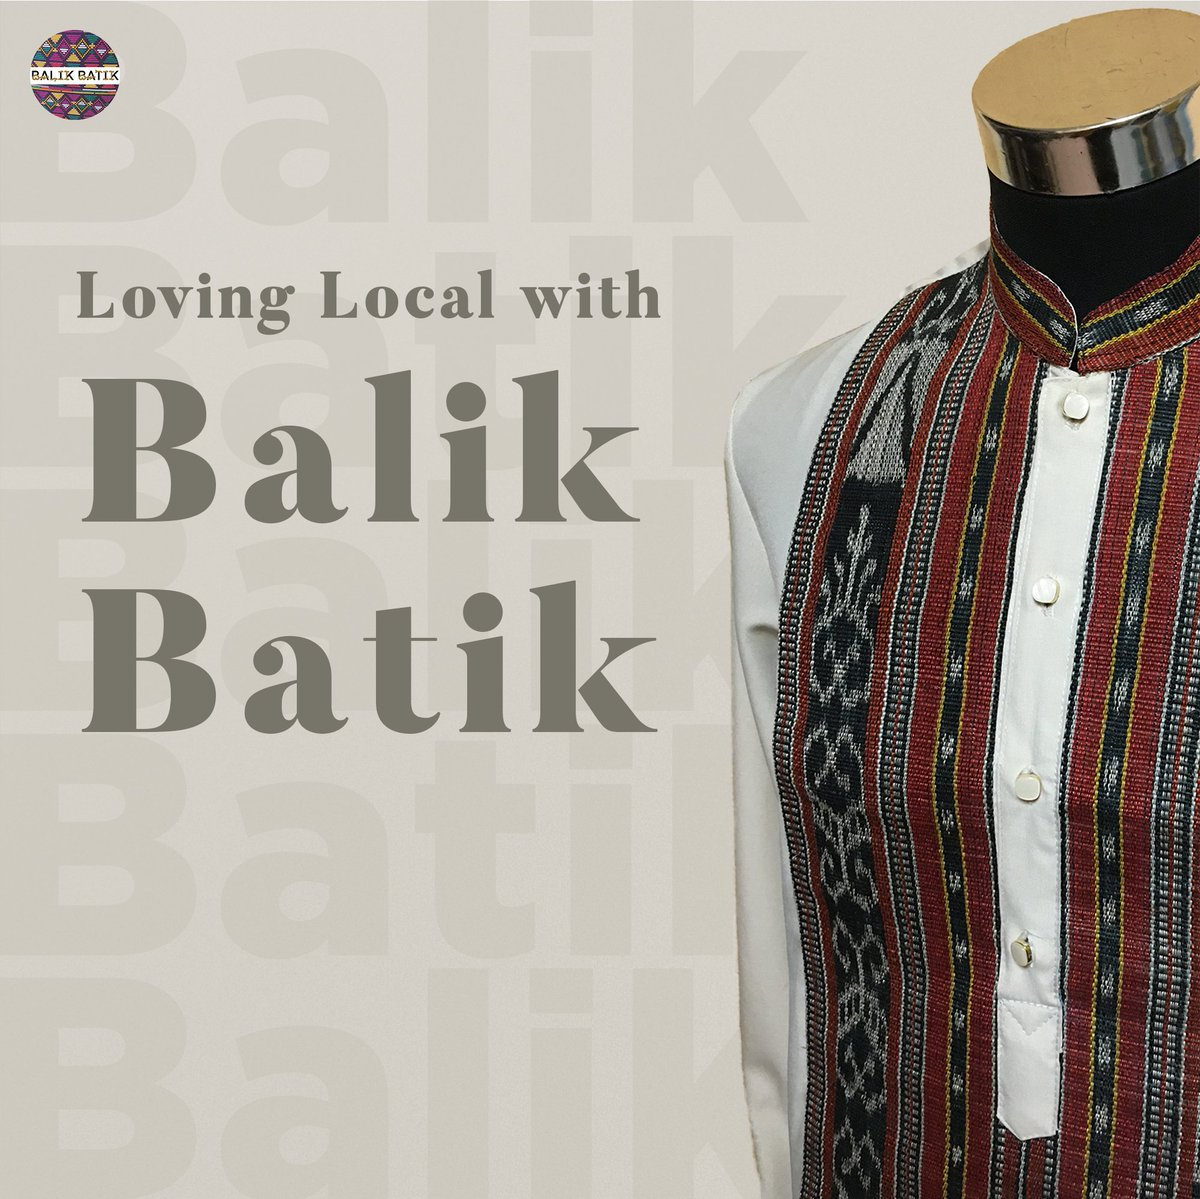 🌟ABOUT BALIK BATIK🌟  It started out with a love for what is uniquely Filipino, and we have been growing since. Our mission is to spread the love for traditional Filipino artistry and weaving through clothing pieces and accessories that are wearable any day, every day.  🇵🇭 https://t.co/Jpia5ViXrP